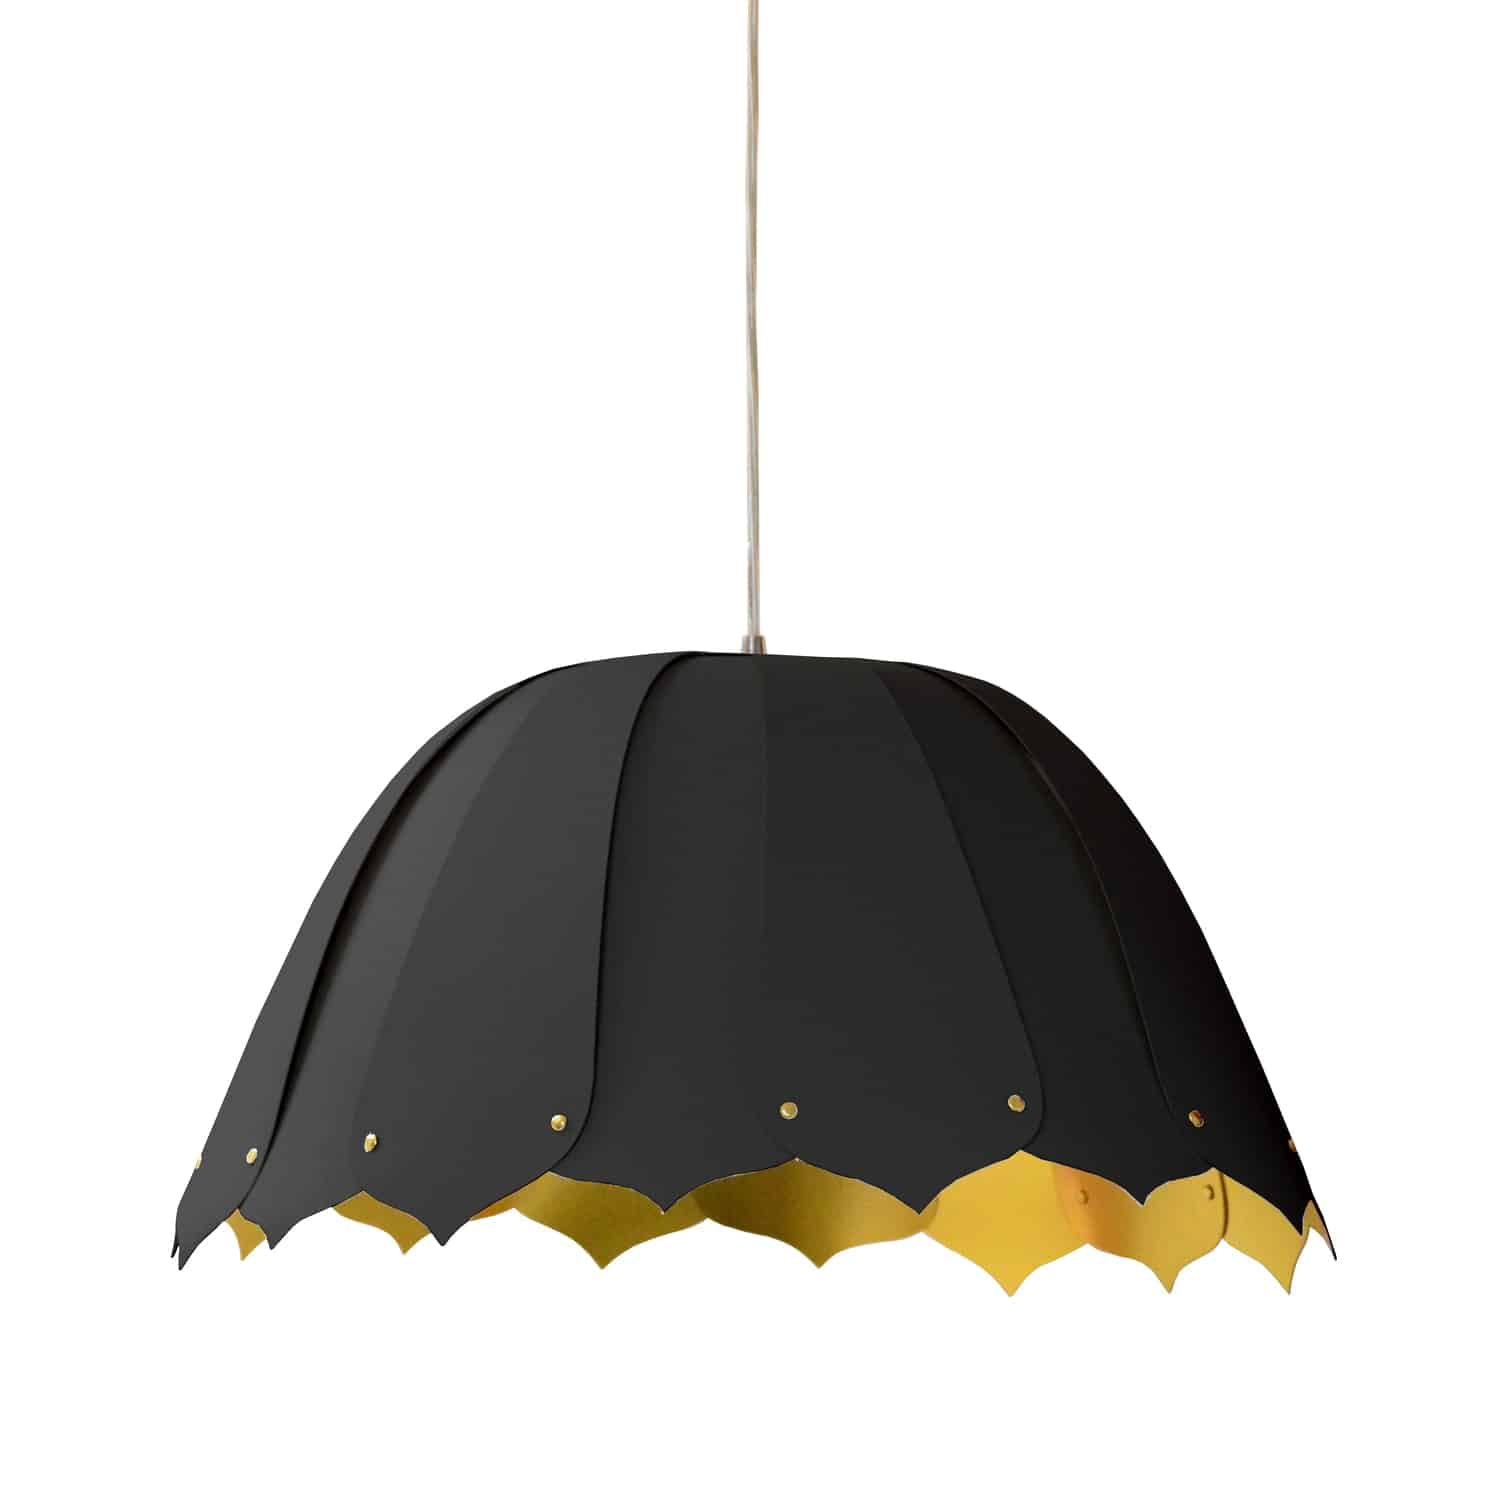 1 Light Noa Pendant JTone Black Gold Small Black